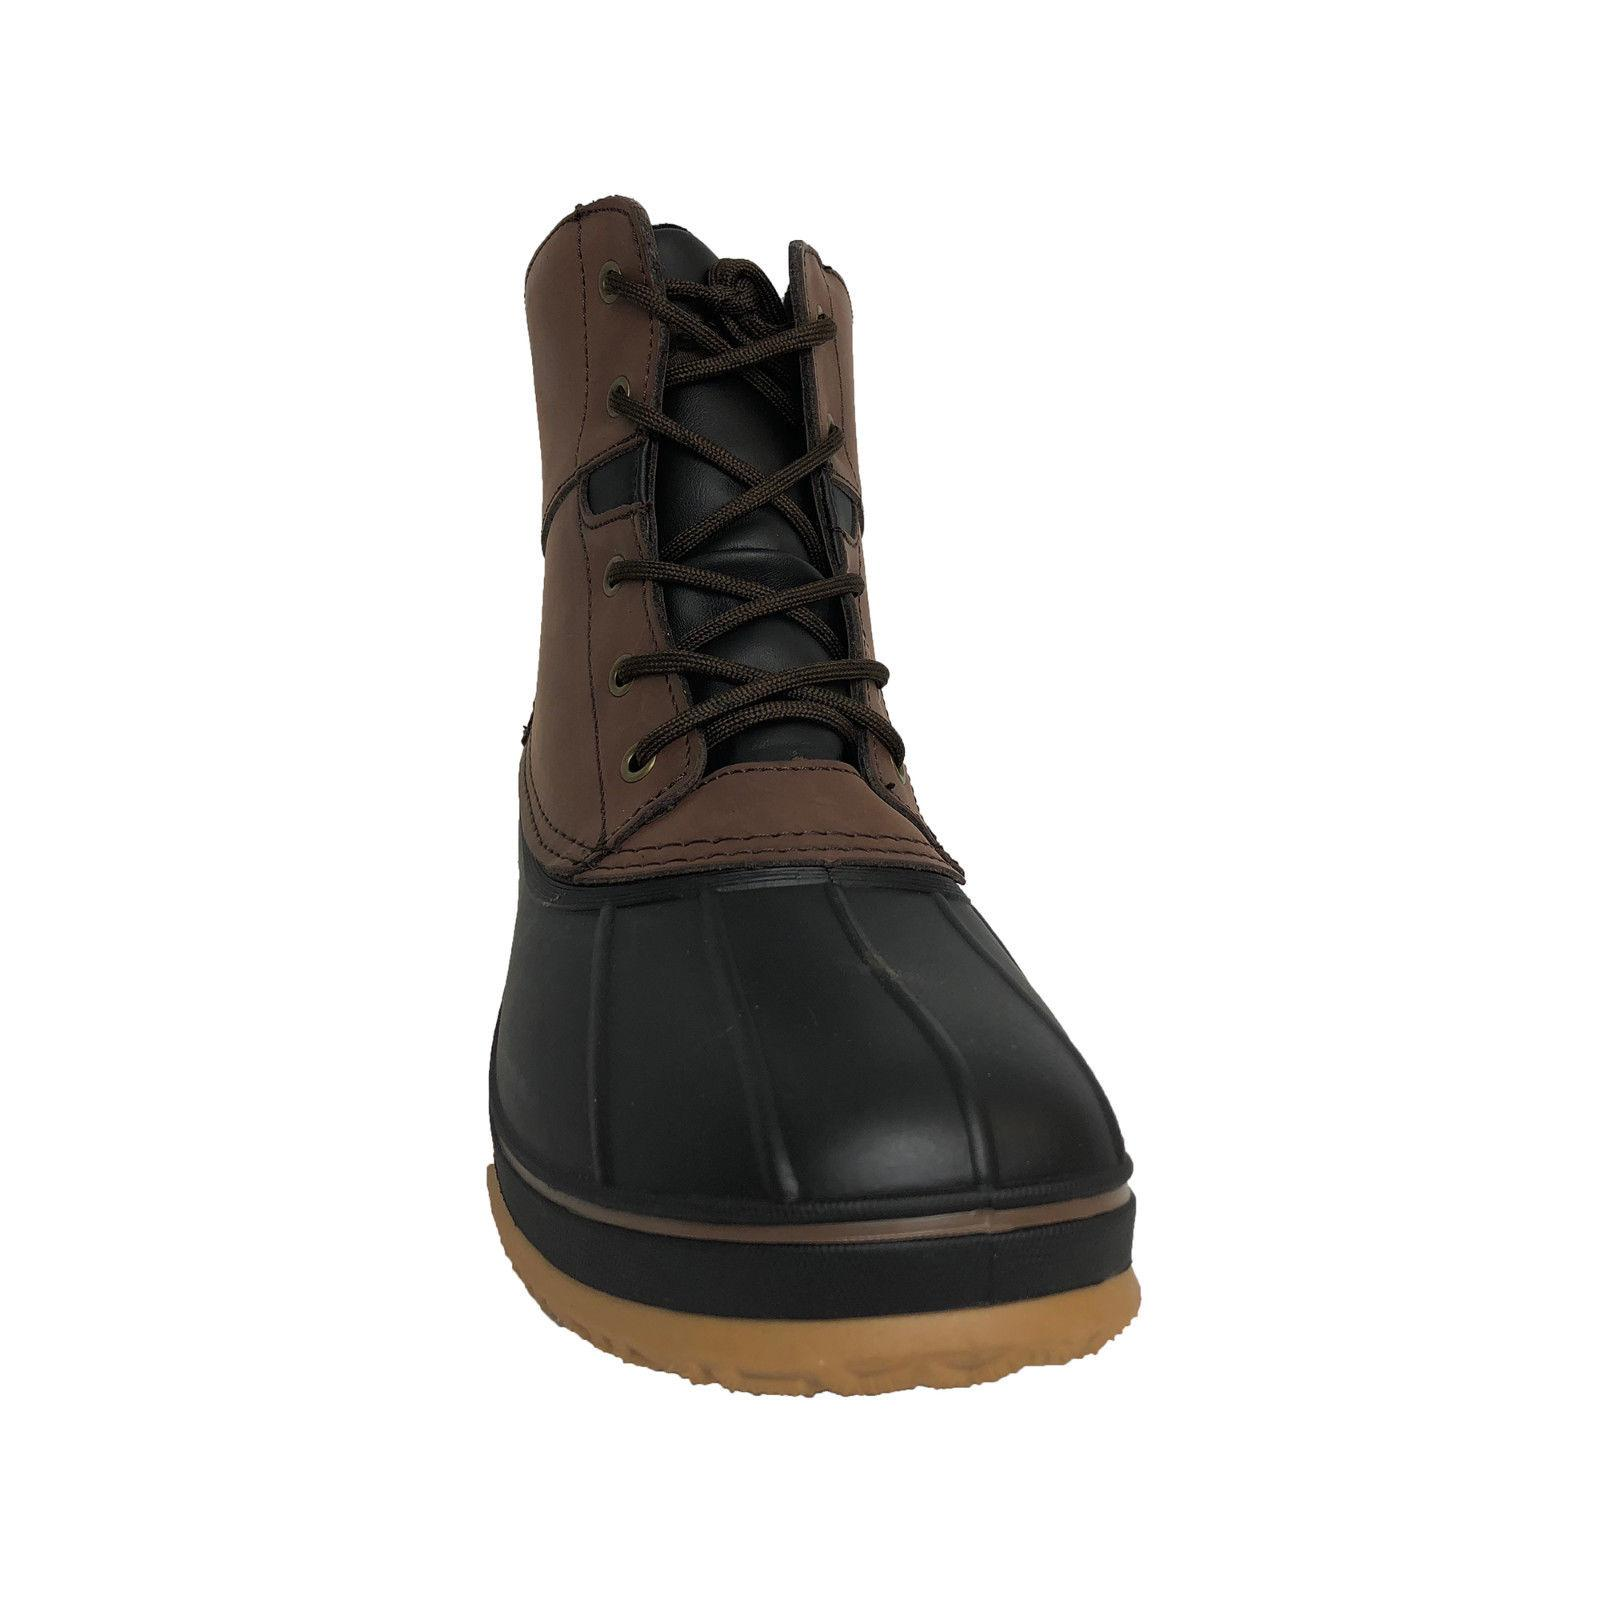 Northside Boots Waterproof Snow Boots Fully Lined